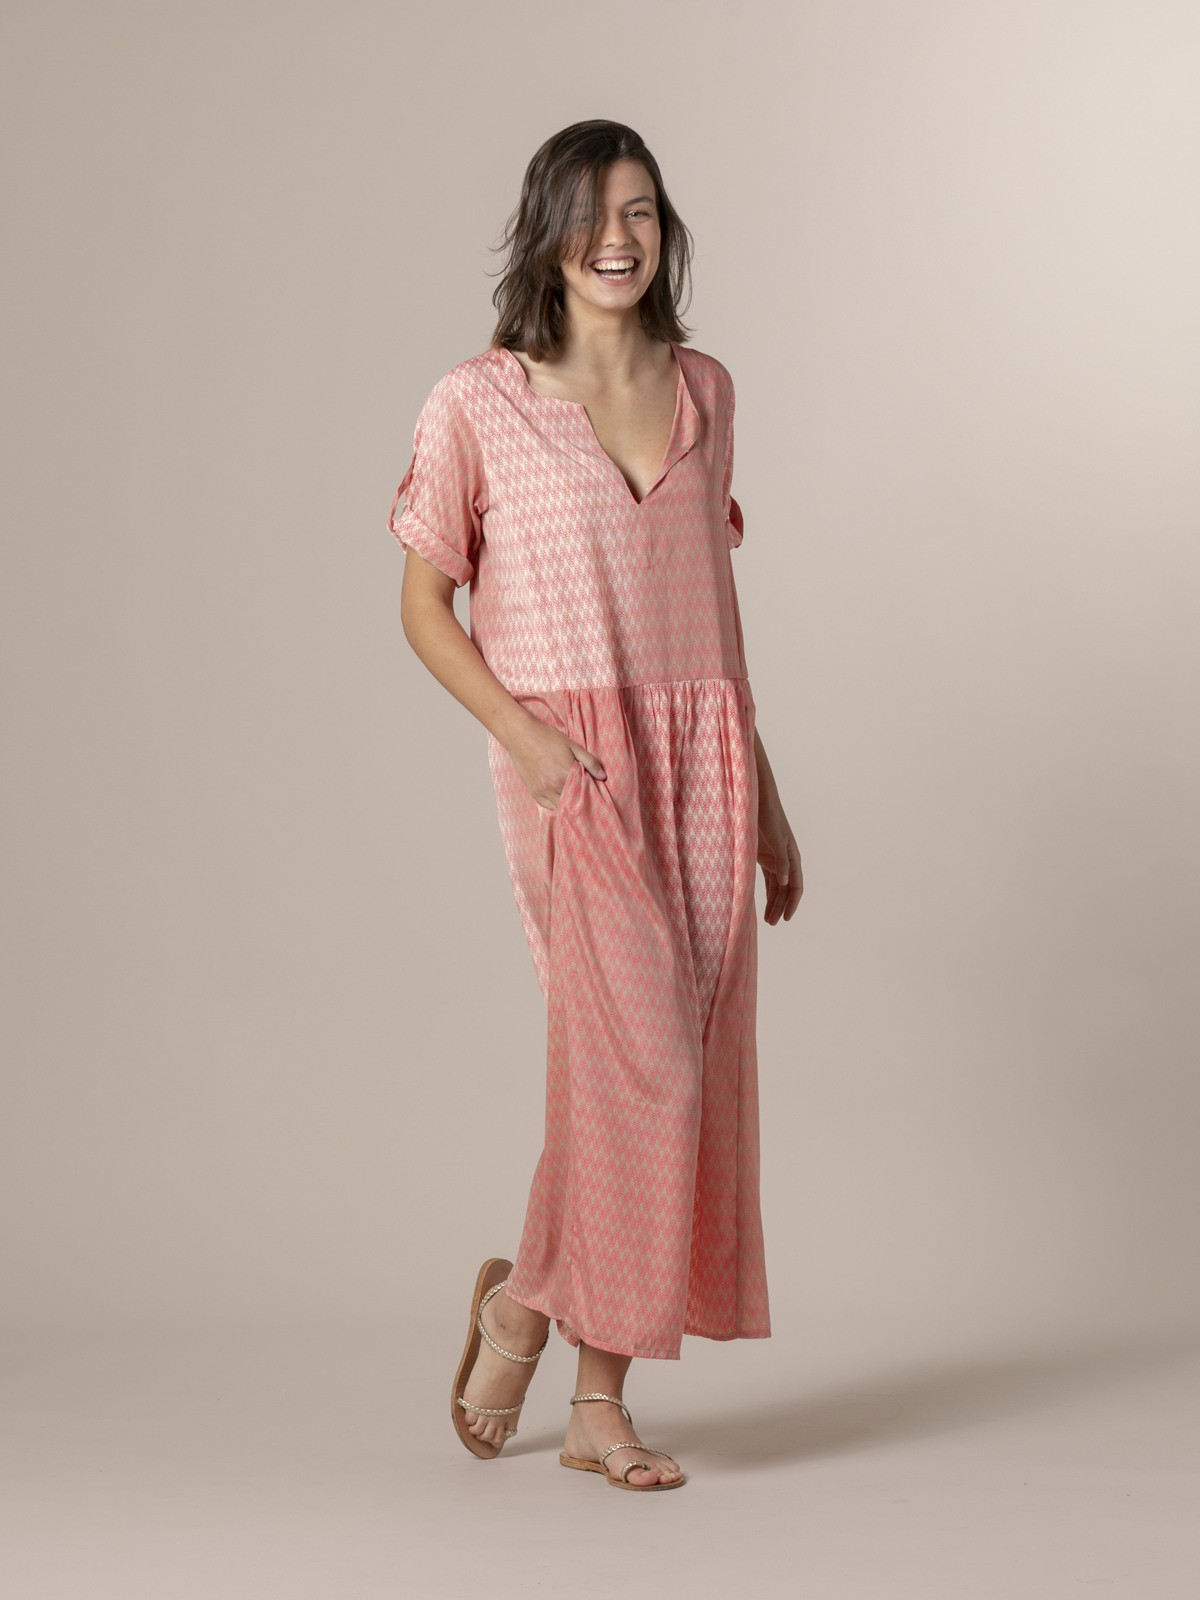 Woman Woman Long flowing dress Pinks